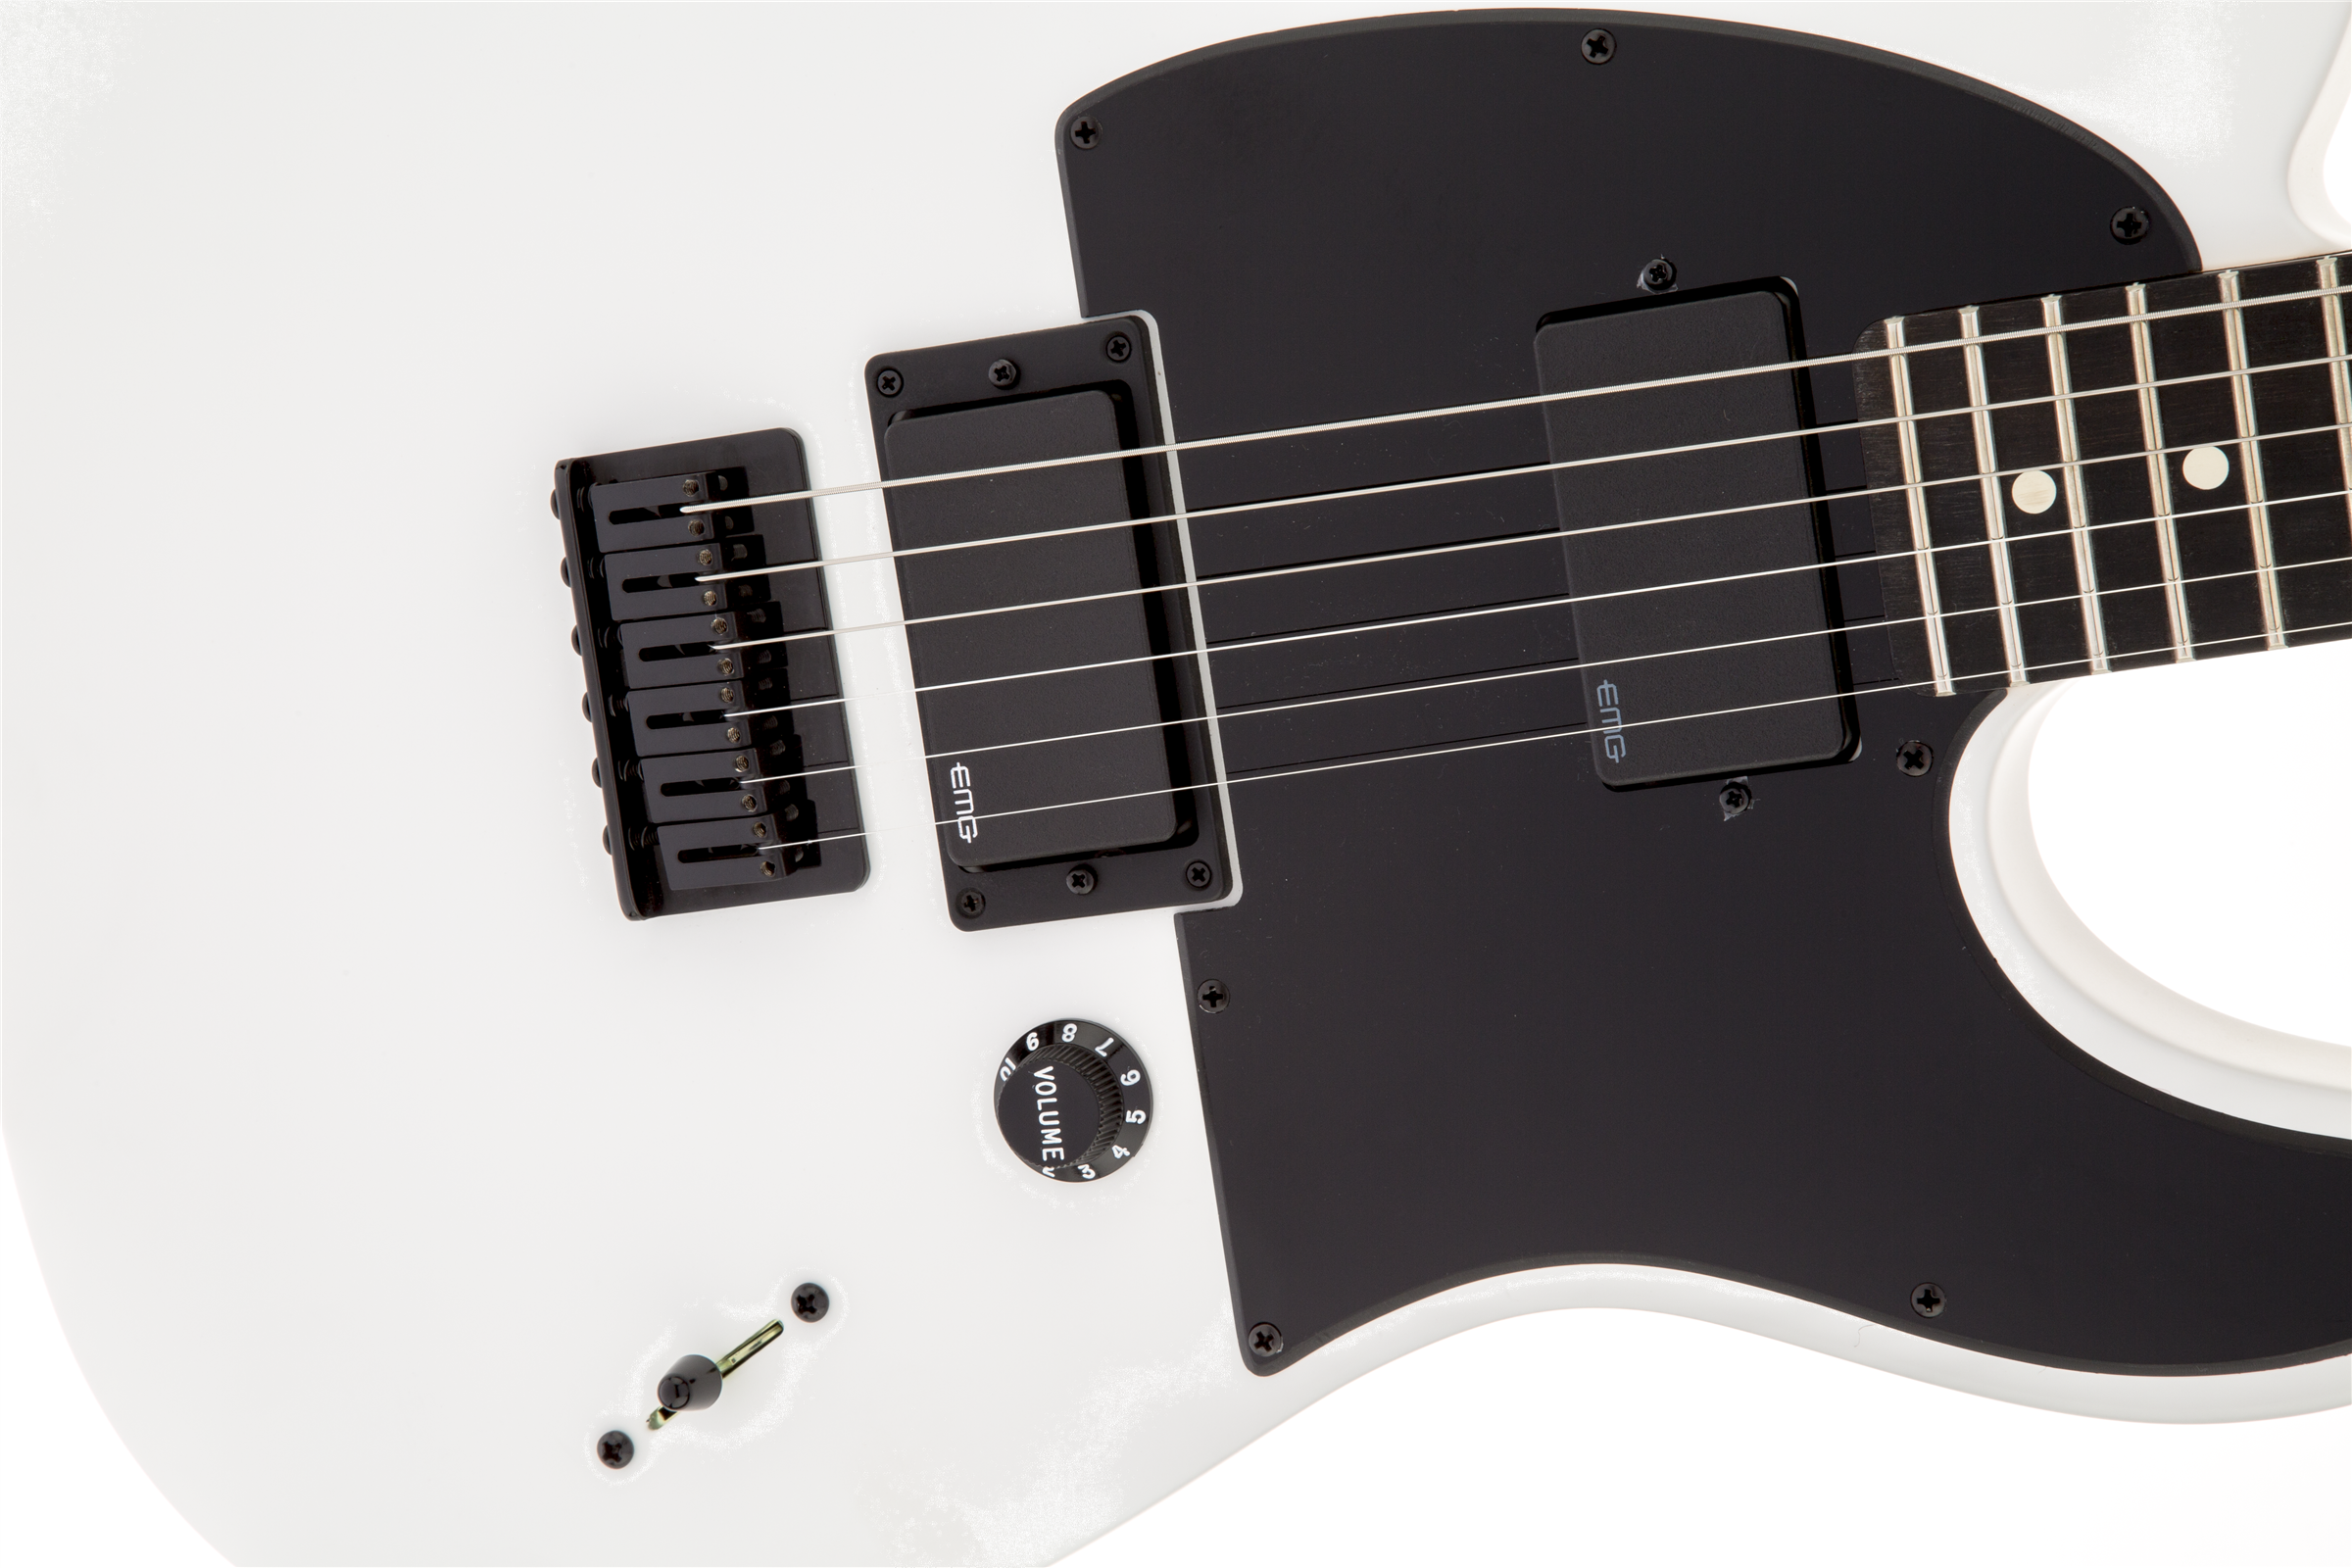 Buy Fender Jim Root Telecaster Ebony Fretboard Flat White Electric Guitars Amazoncom FREE DELIVERY possible on eligible purchases